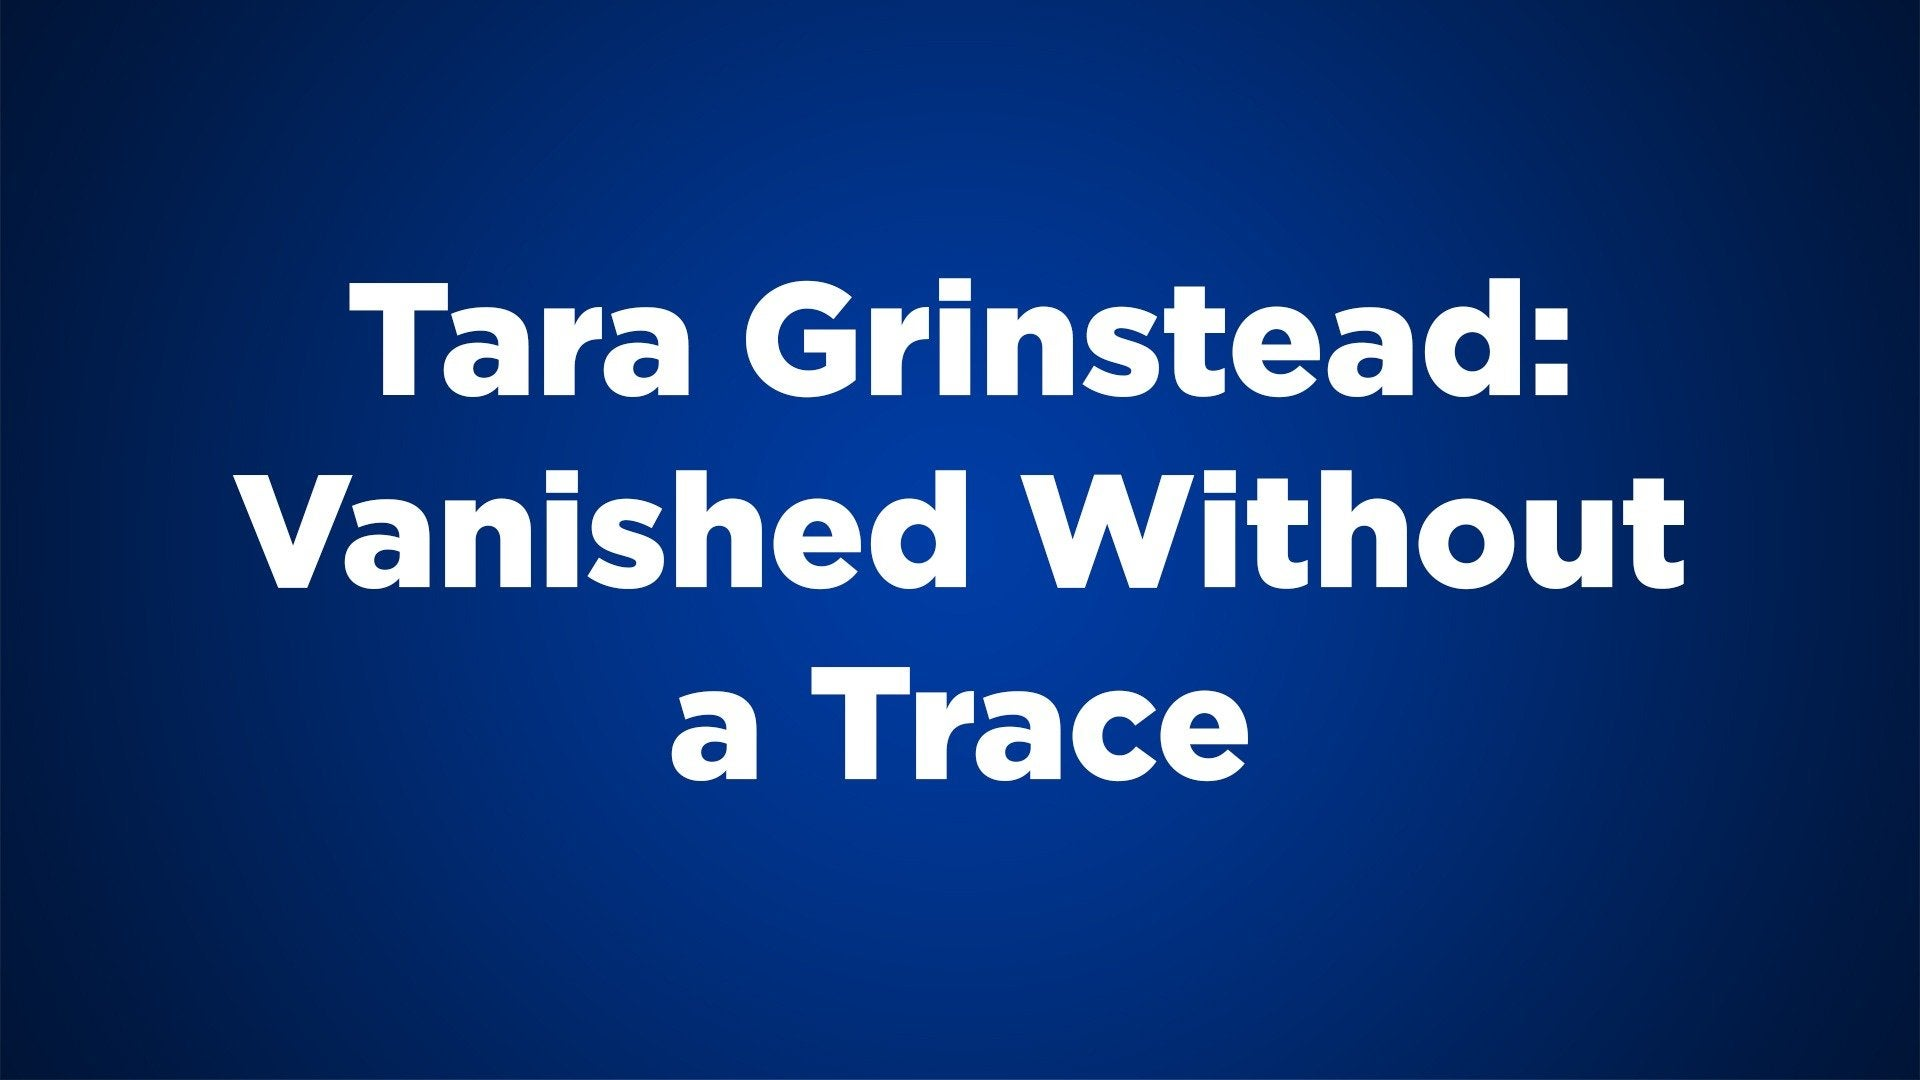 Tara Grinstead: Vanished Without a Trace